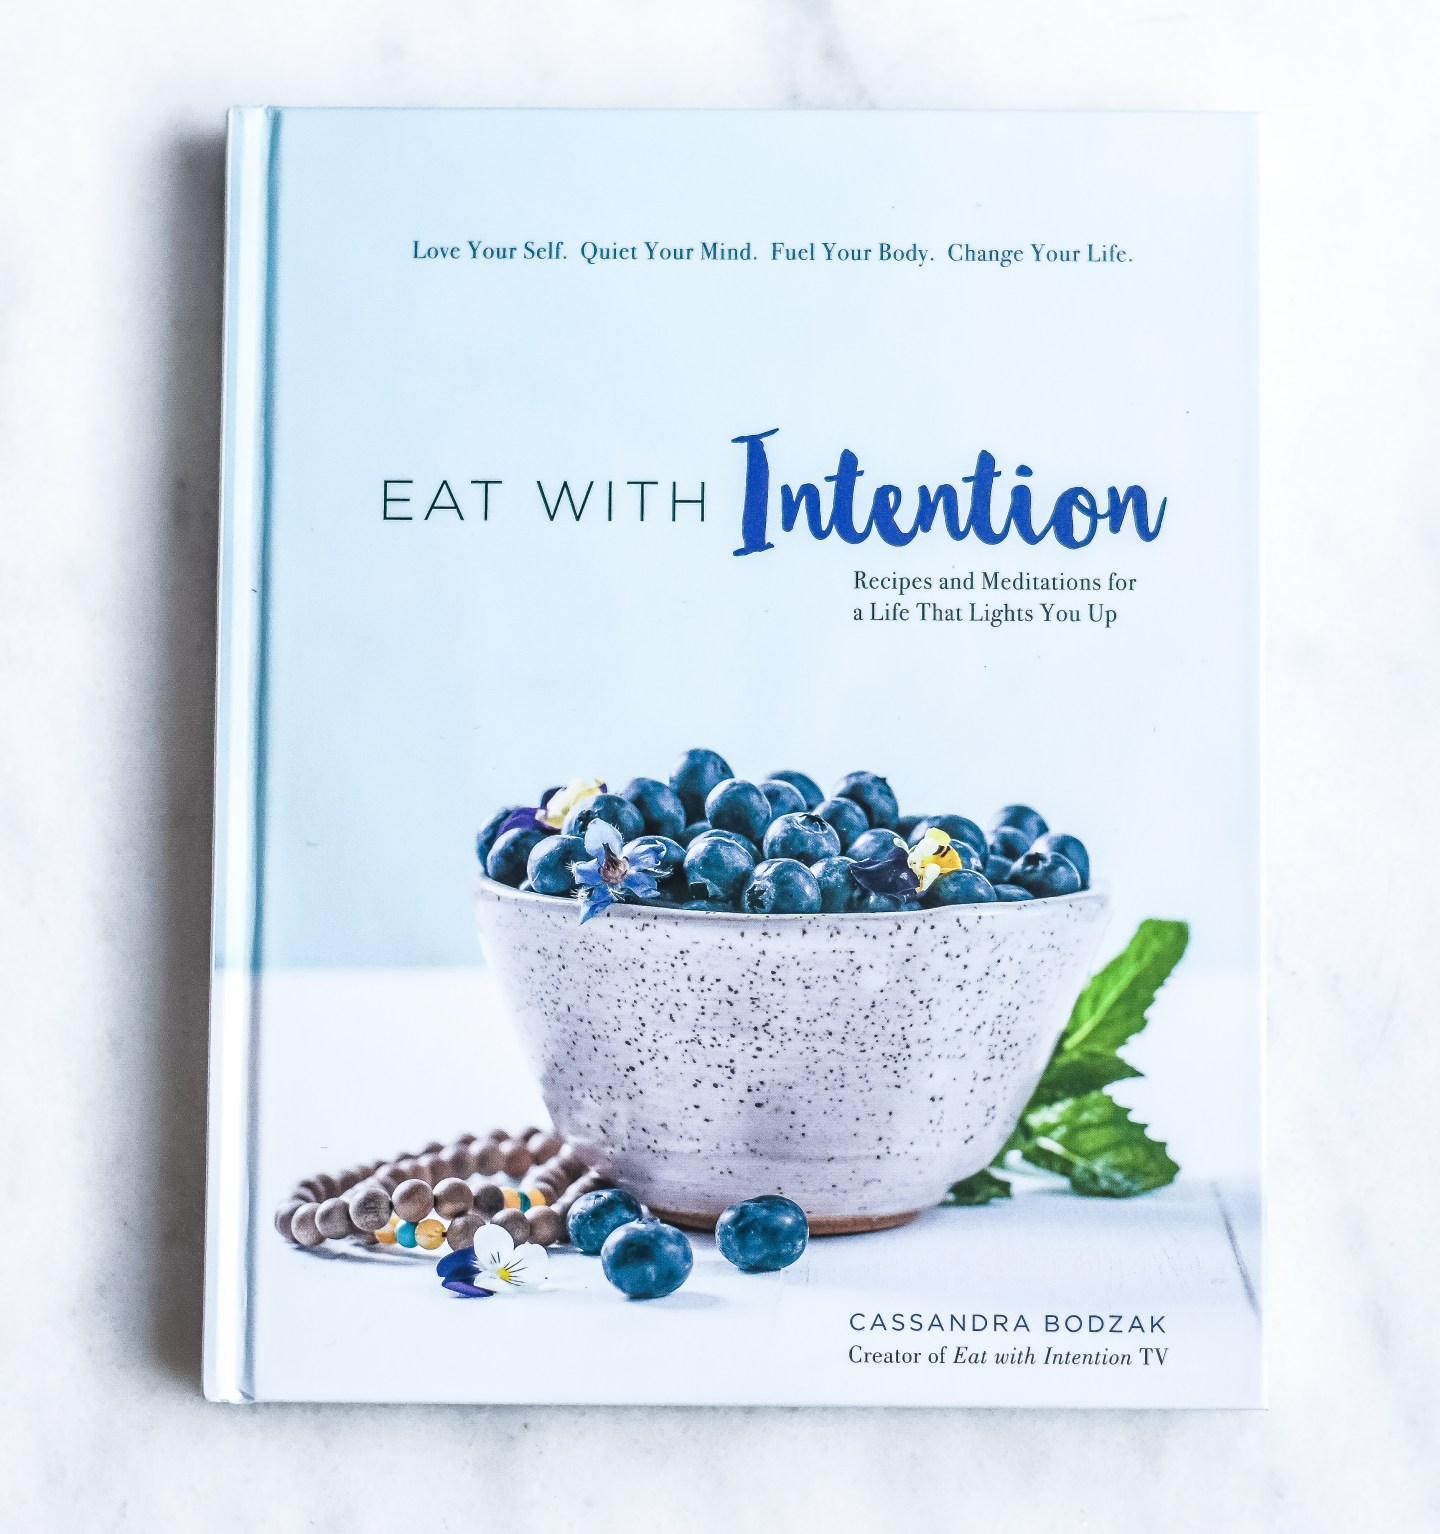 Eat with Intention